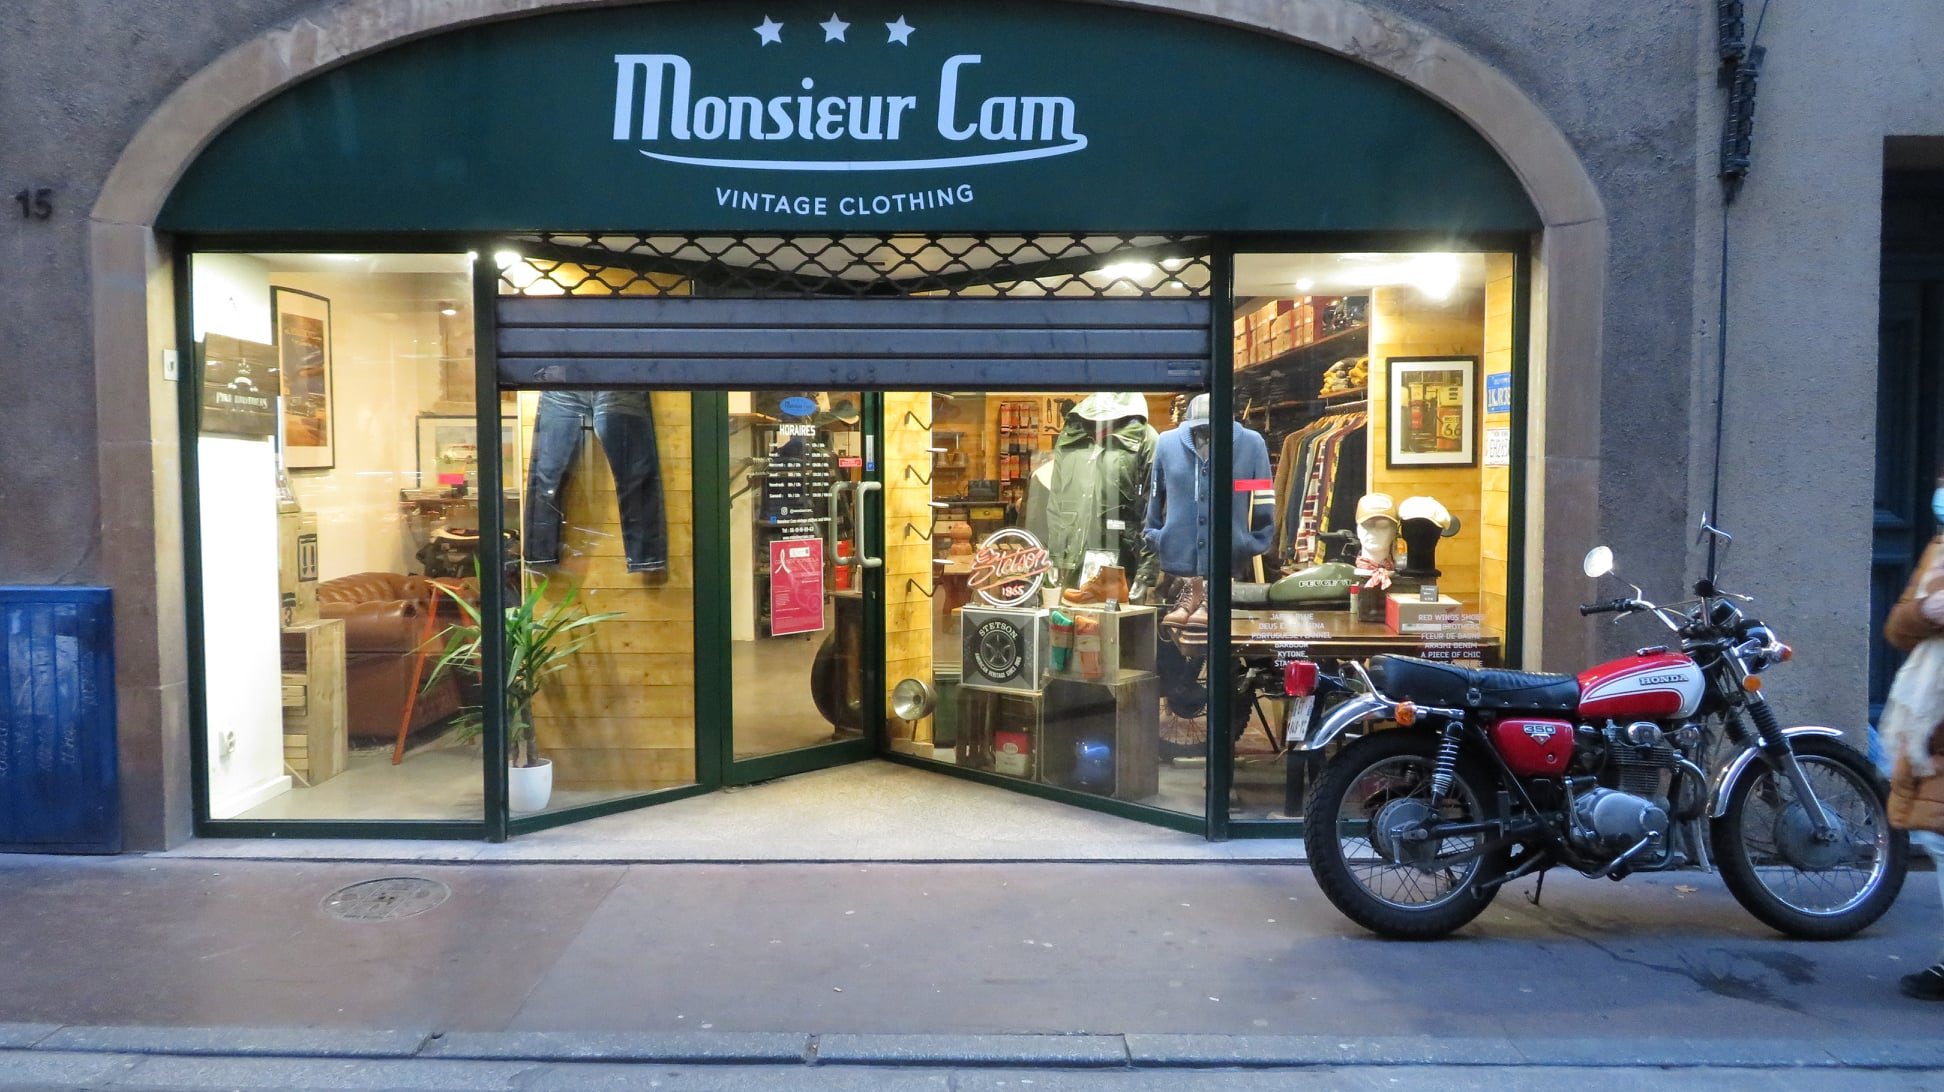 Monsieur Cam vintage clothes and bikes